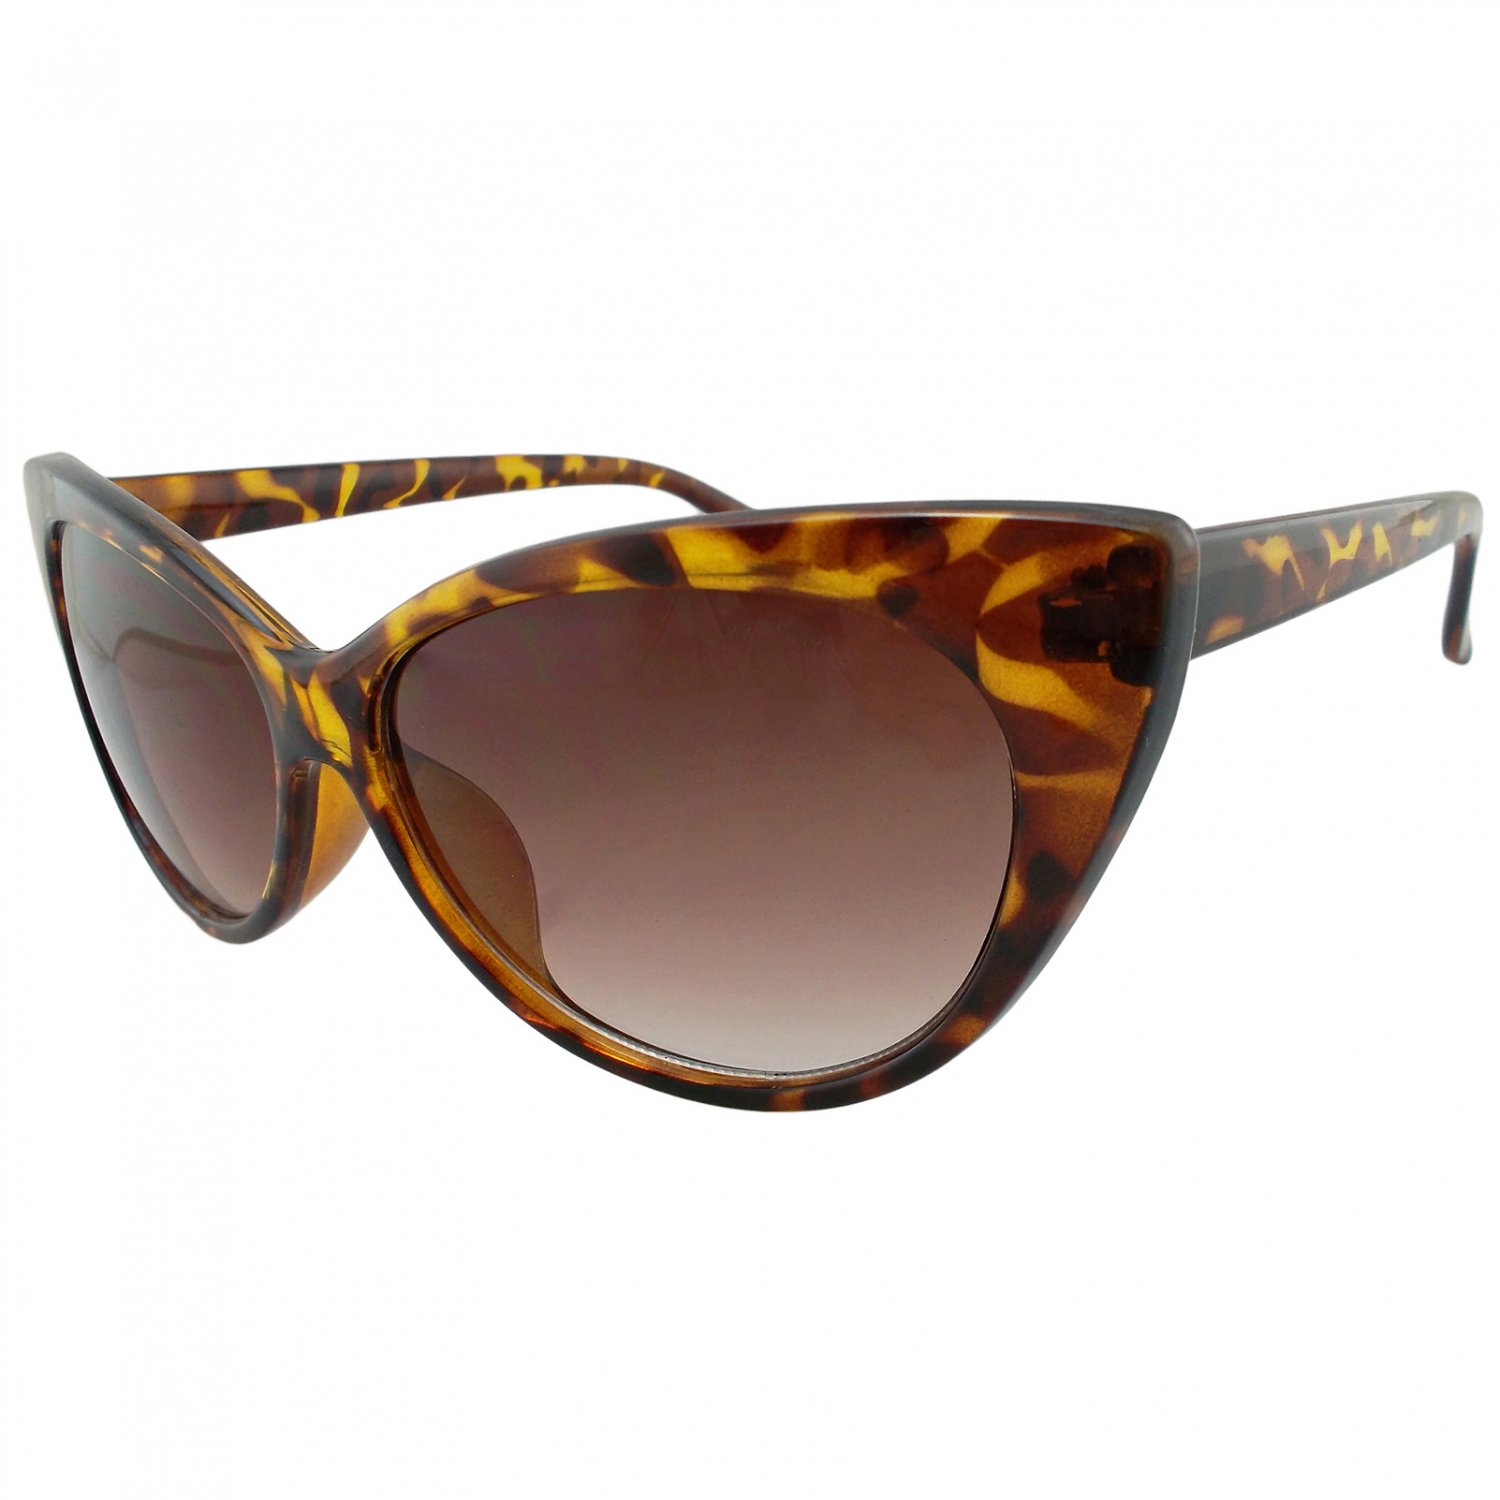 Women's Cheetah Classic Cat Eye Oversized Designer Fashion Shades Sunglasses #13033